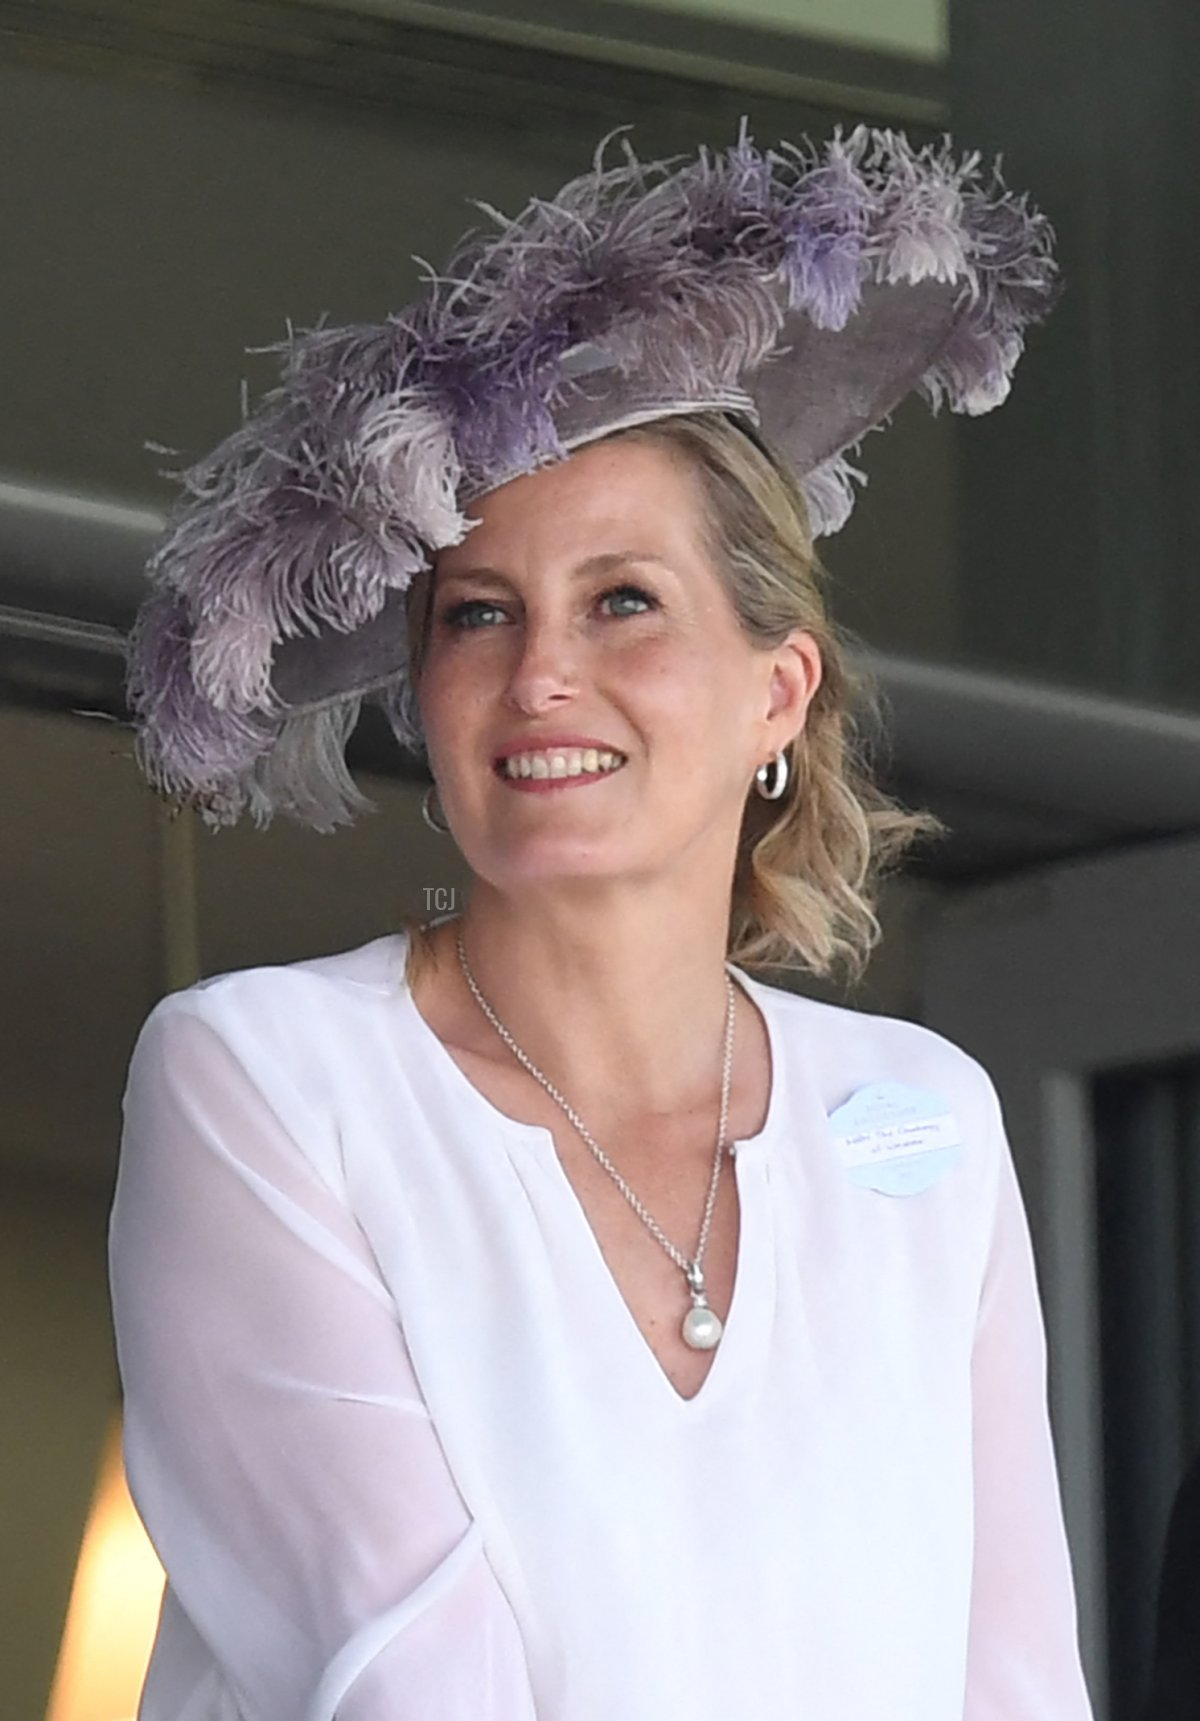 Britain's Sophie, Countess of Wessex (L) and Britain's Prince Edward, Earl of Wessex attend the second day of the Royal Ascot horse racing meet, in Ascot, west of London on June 16, 2021